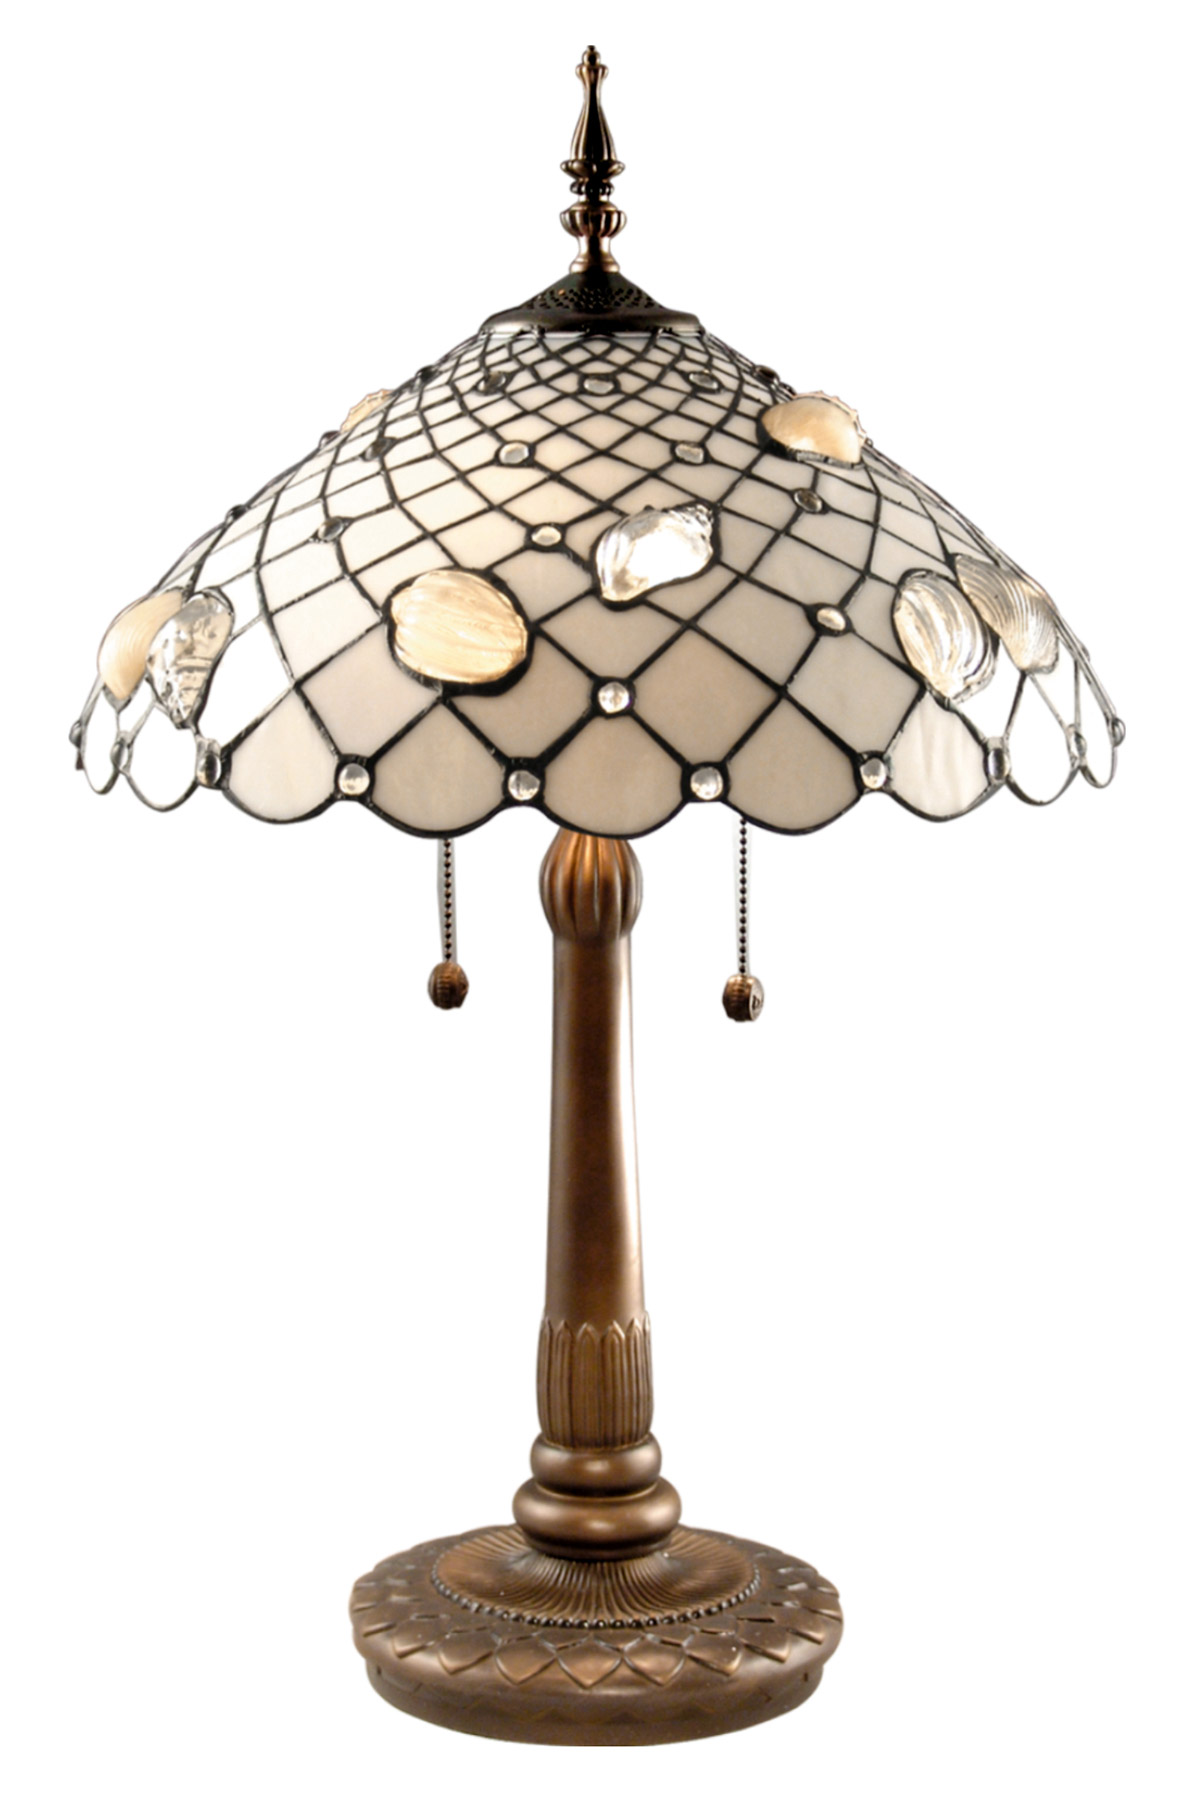 Dale Tiffany Tt60055 Tiffany Shells Table Lamp